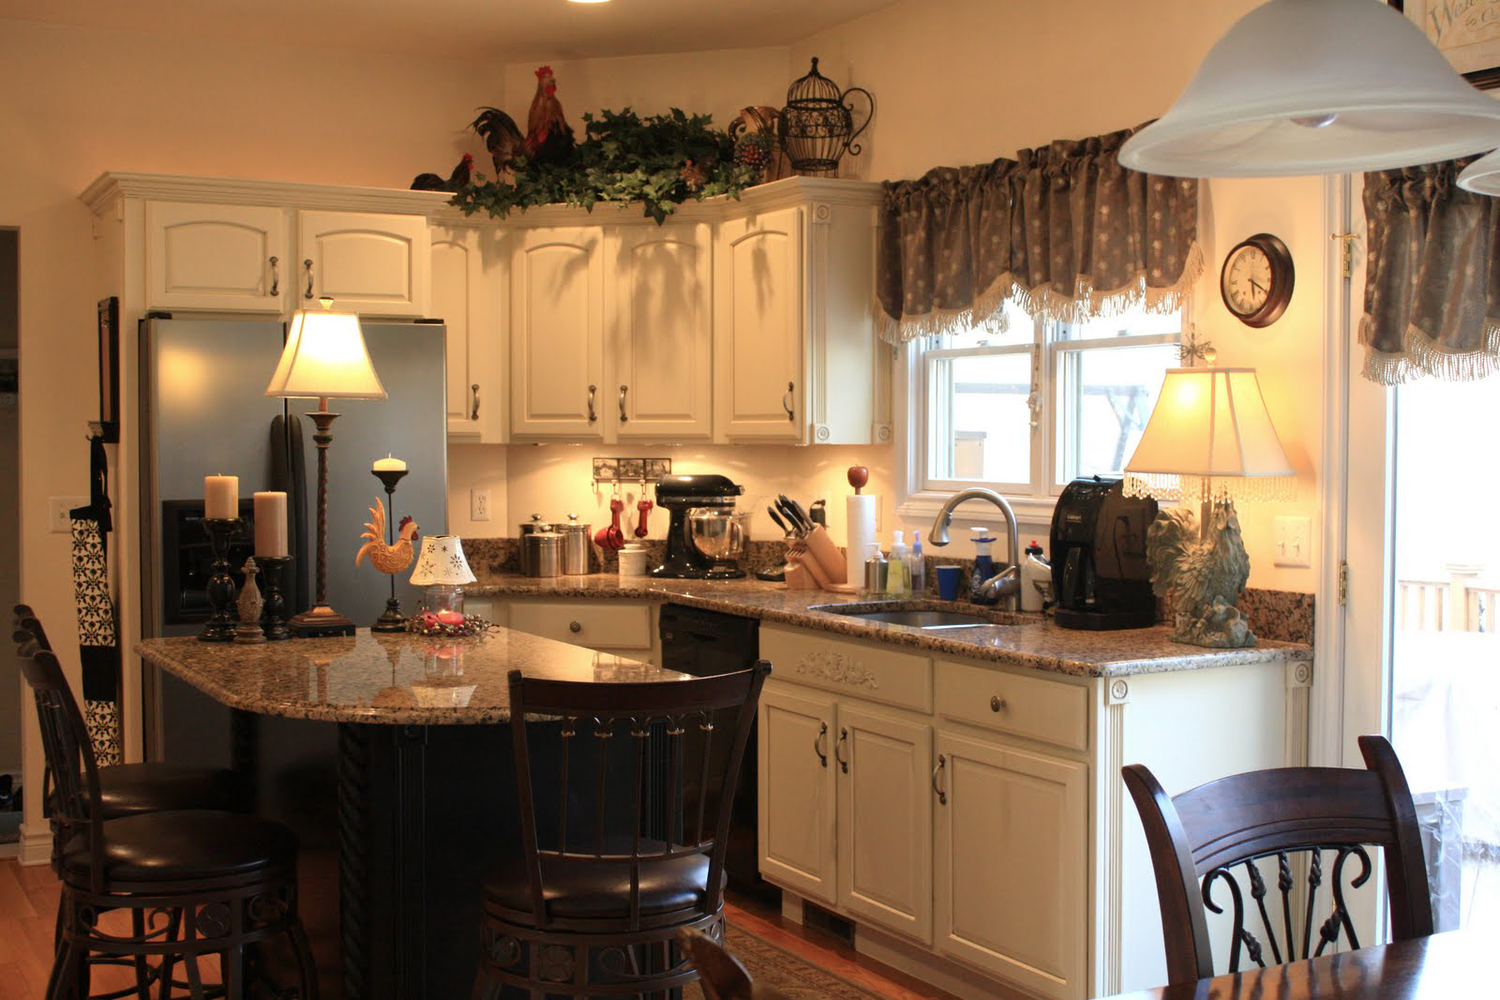 Diy Kitchen Makeover Contest Home Makeover Contests Design Ideas Homesfeed Kitchen Remodel